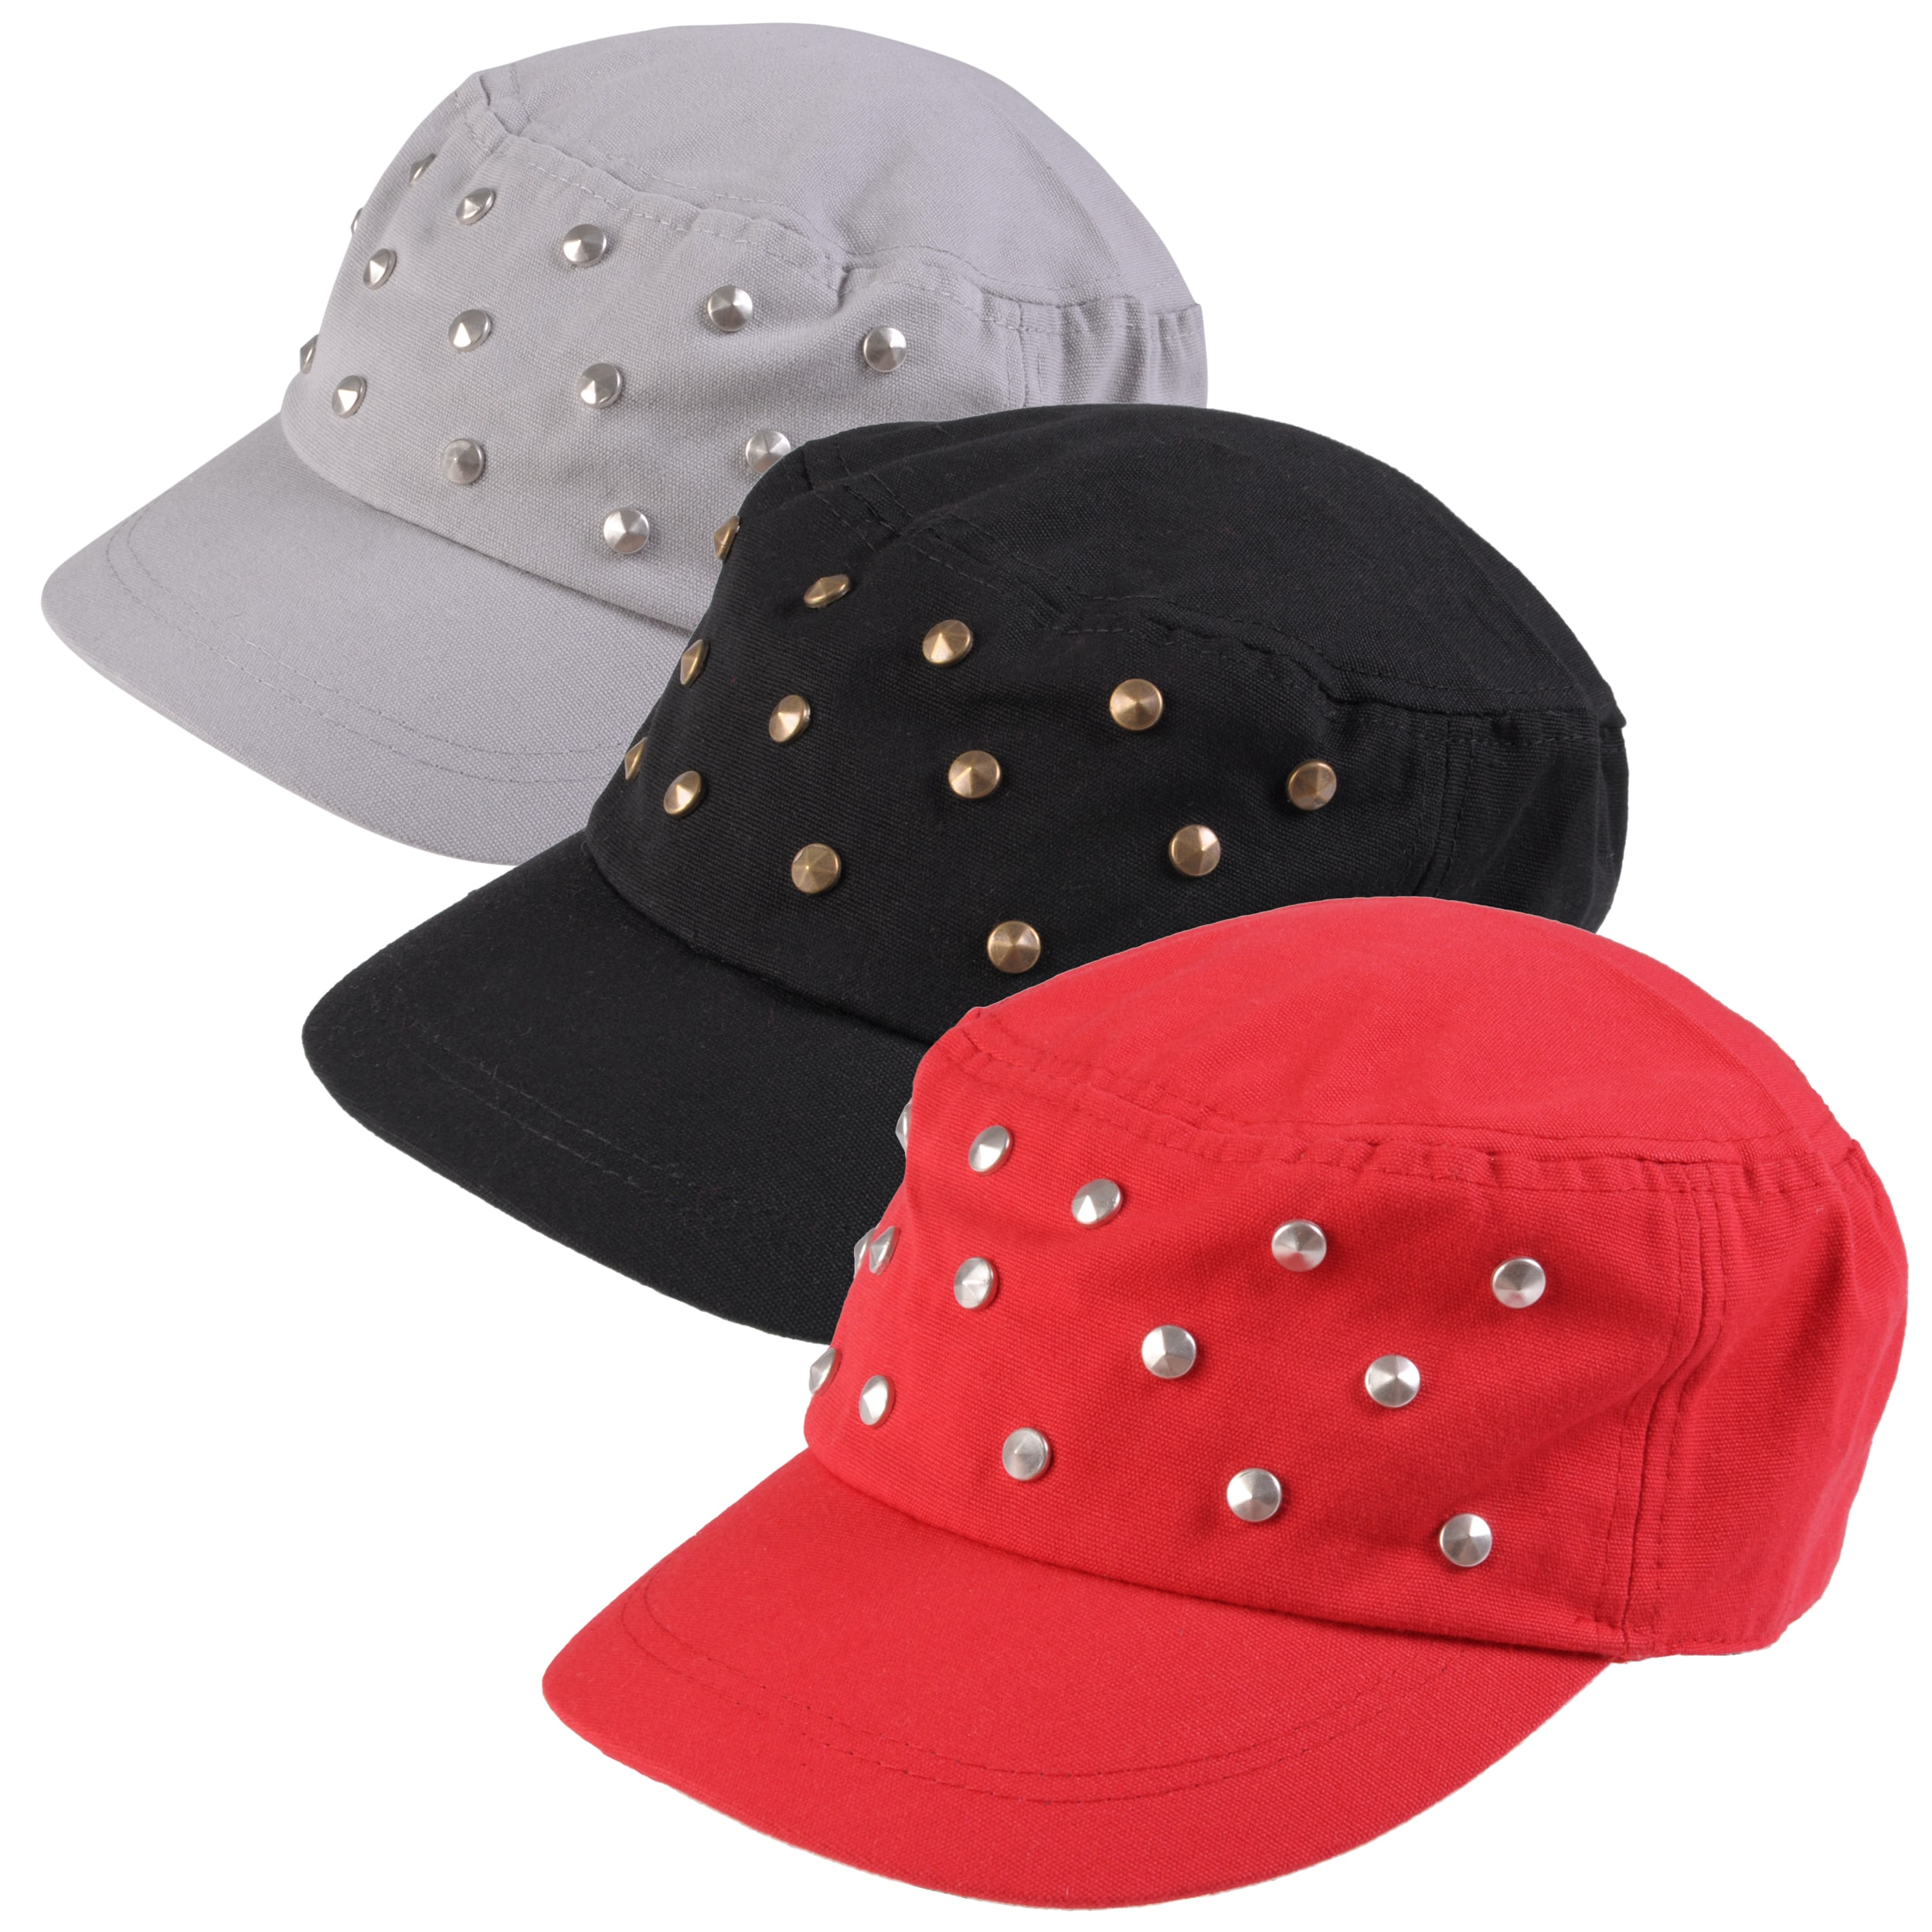 Journee Collection Women's Studded Adjustable Military Cap